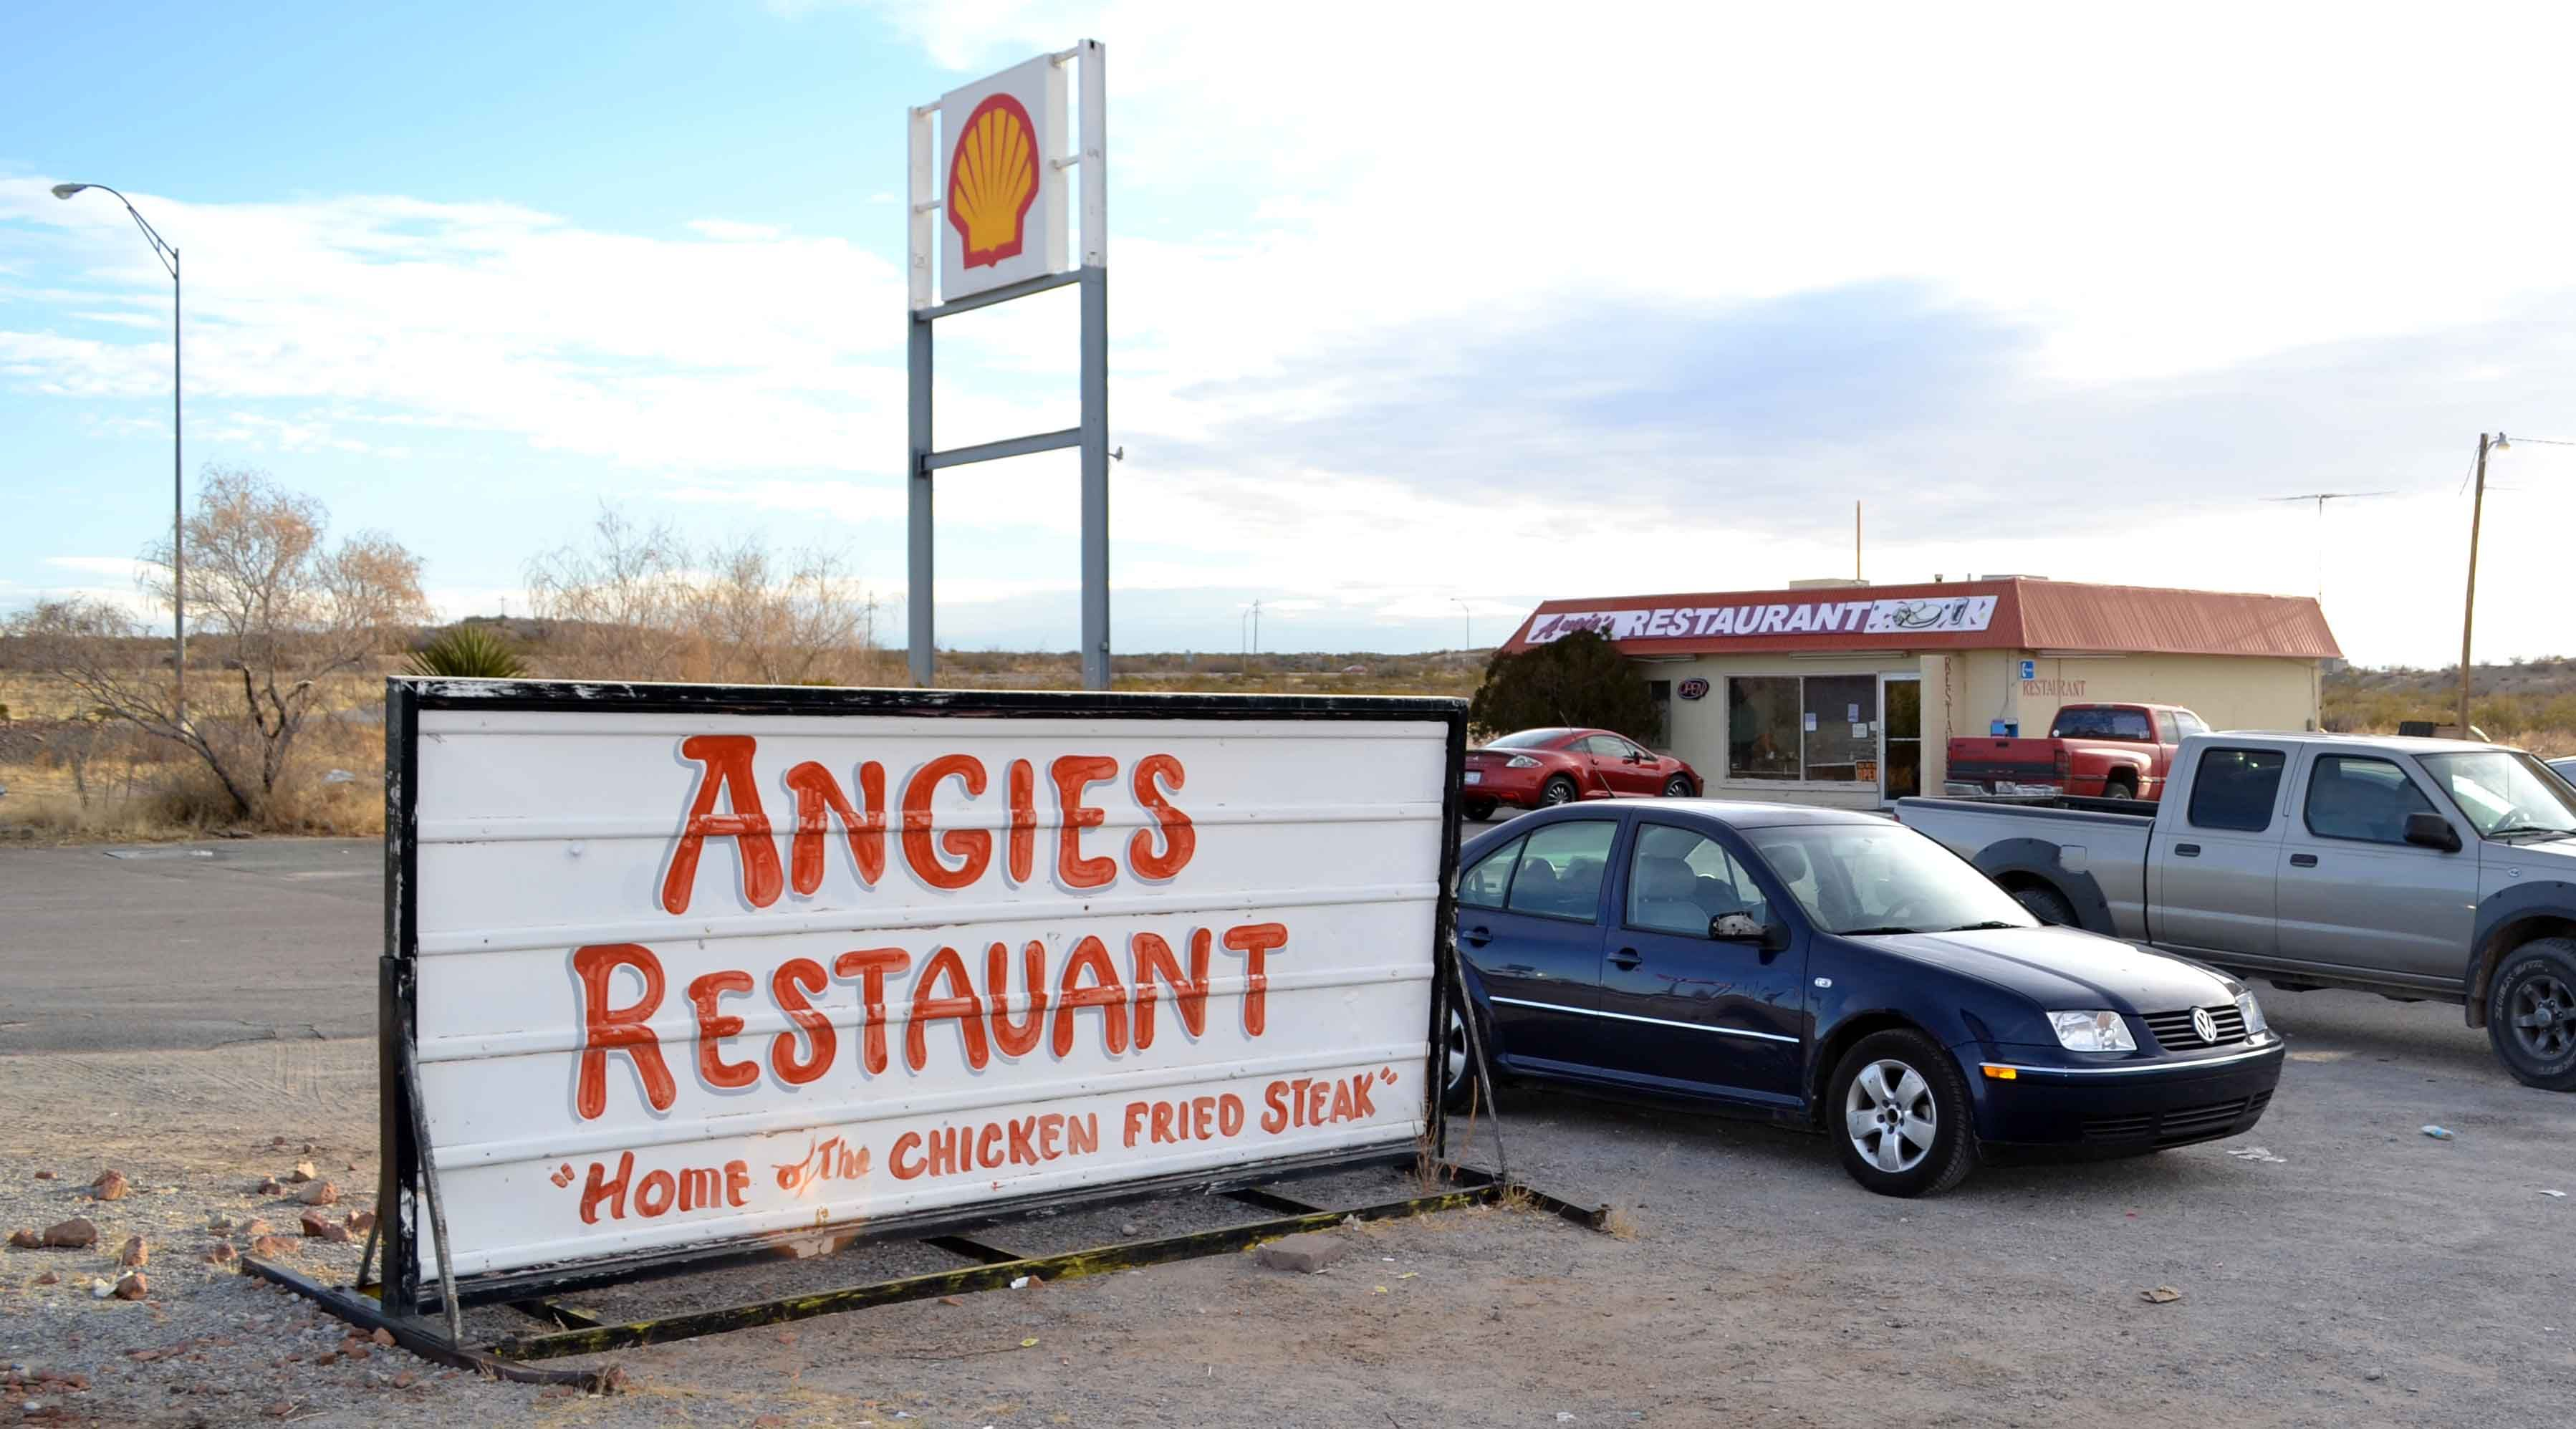 Got the Huevos Rancheros for breakfast, which I believe must be the most authentically authentic Mexican breakfast I've ever had. Angie still works there, but I was served by a waitress named Thelma who told me that Angie's Restaurant had been around for at least 30 years.